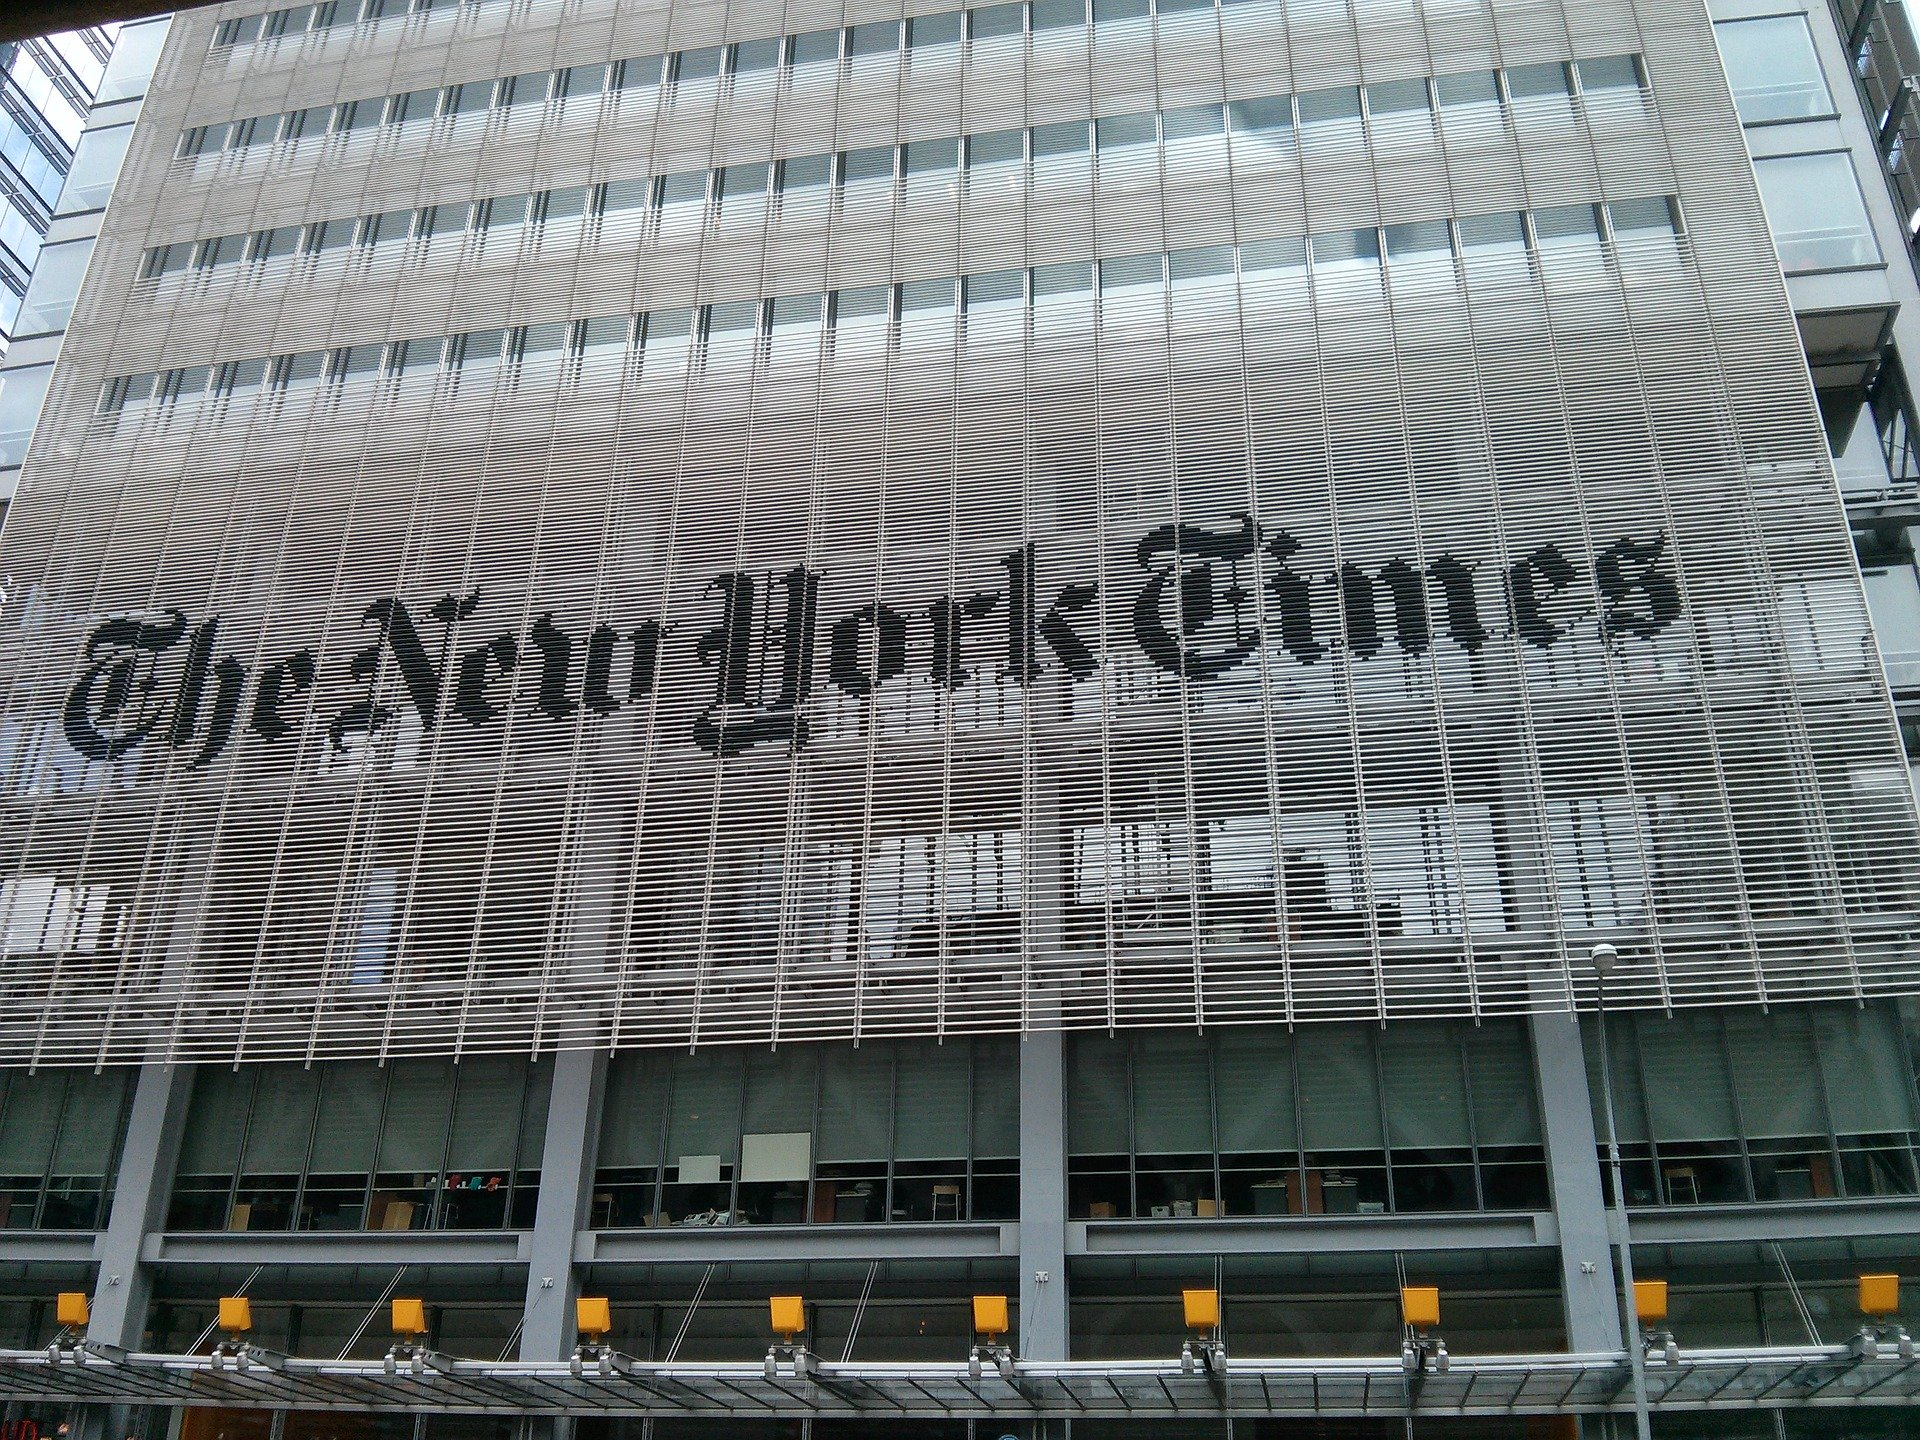 The New York Times : il primo quotidiano newyorkese festeggia 166 anni